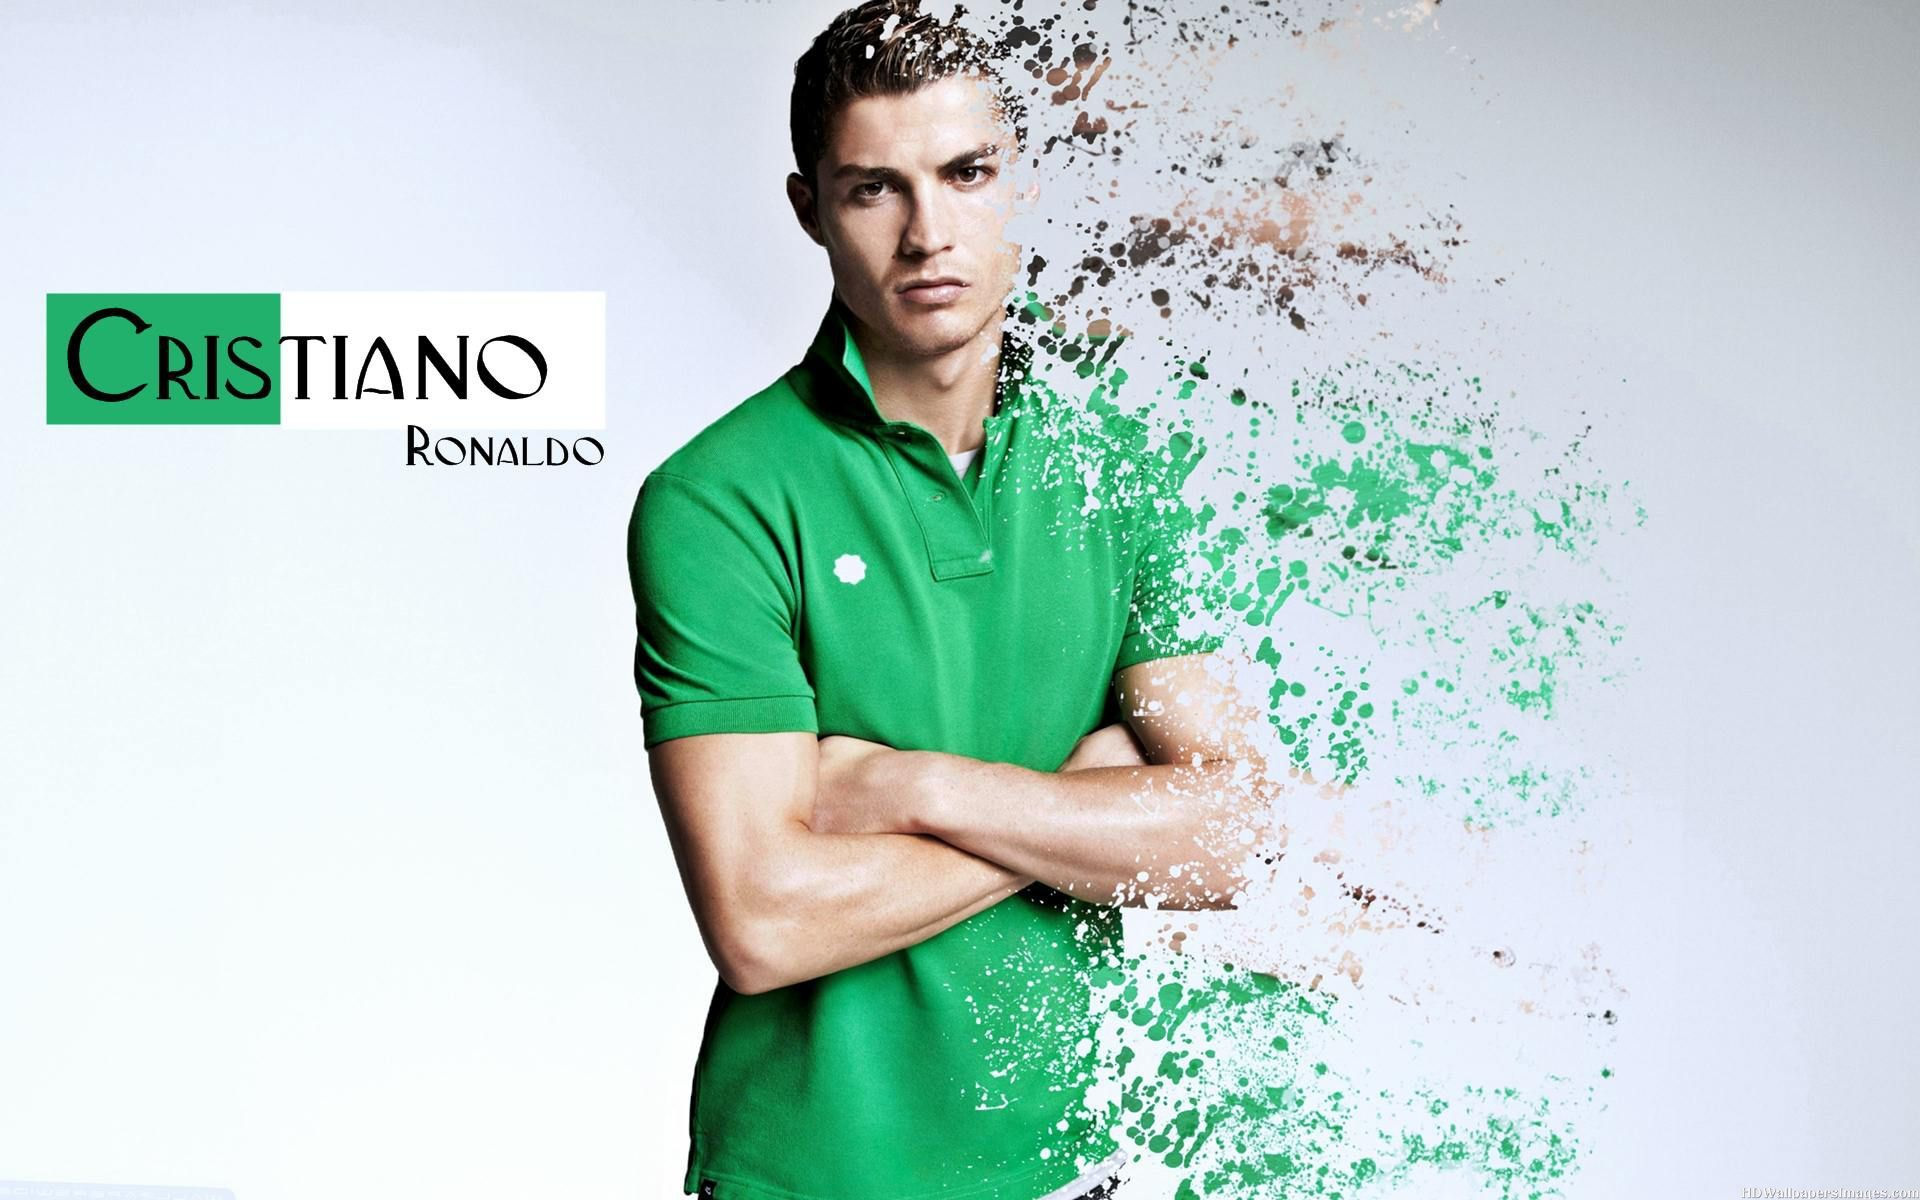 cristiano ronaldo in green shirt wallpaper - cristiano ronaldo